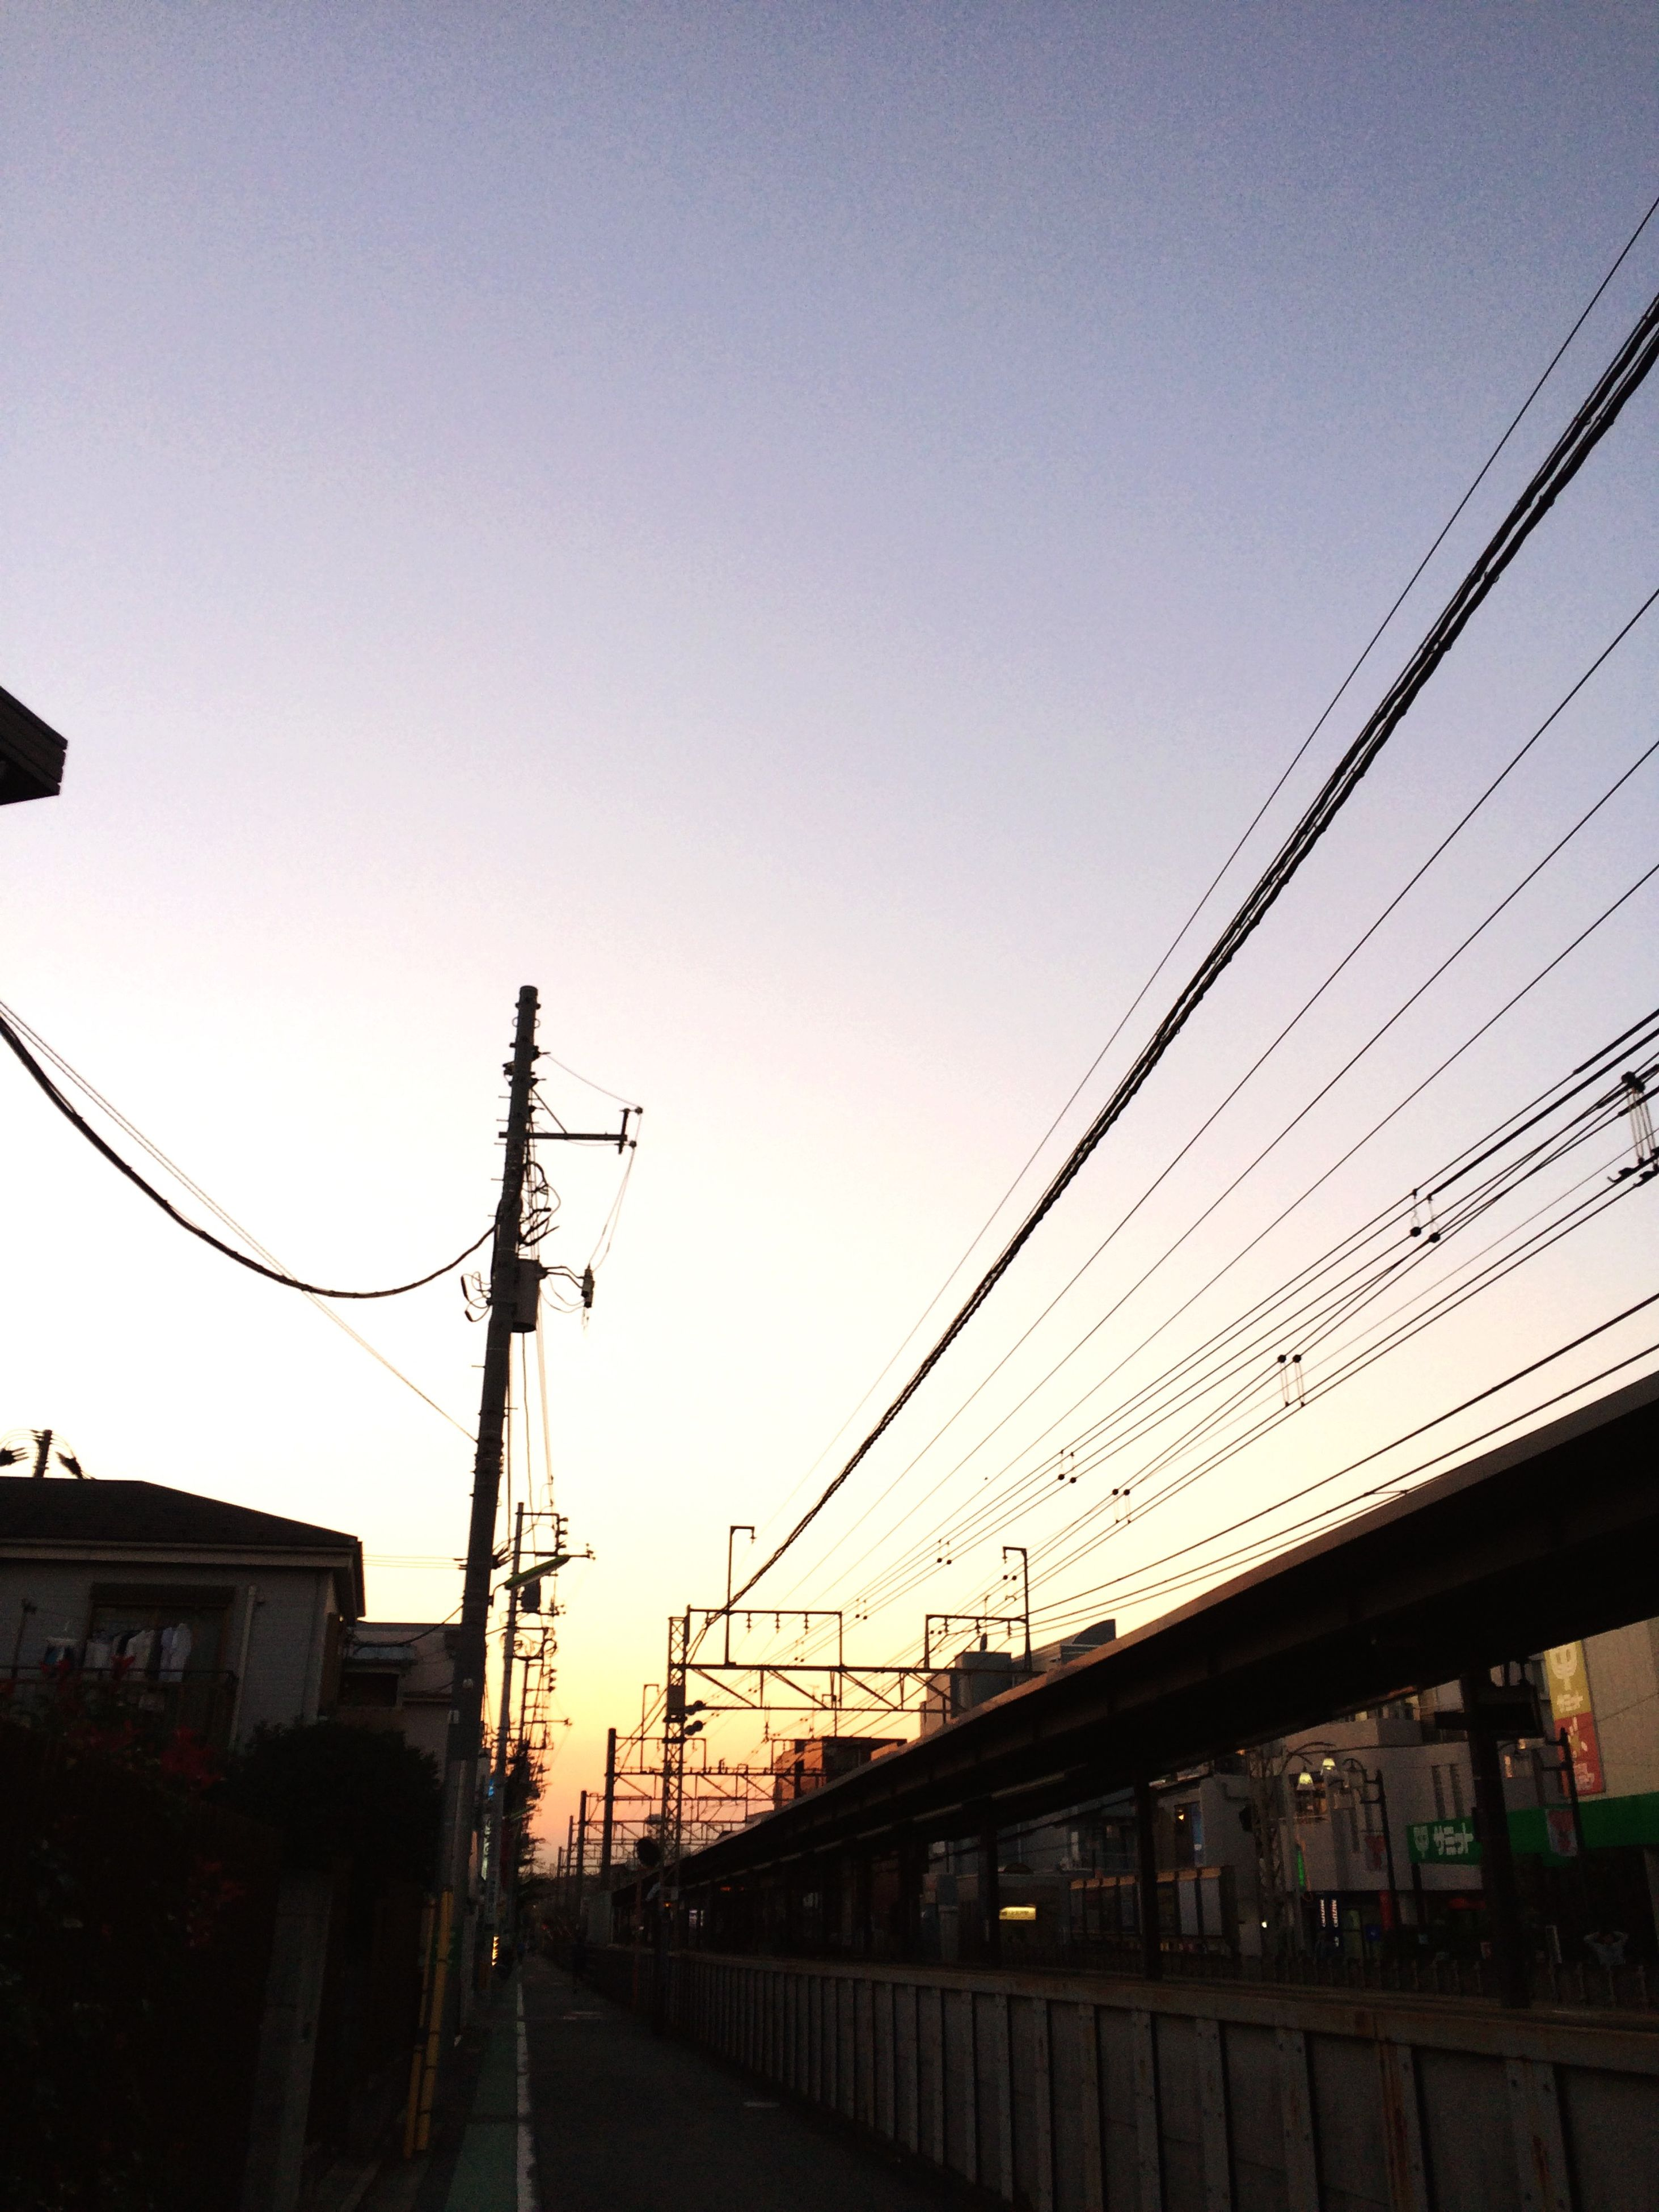 clear sky, power line, built structure, architecture, building exterior, connection, cable, electricity pylon, low angle view, electricity, power supply, copy space, technology, power cable, fuel and power generation, silhouette, city, sky, outdoors, sunset